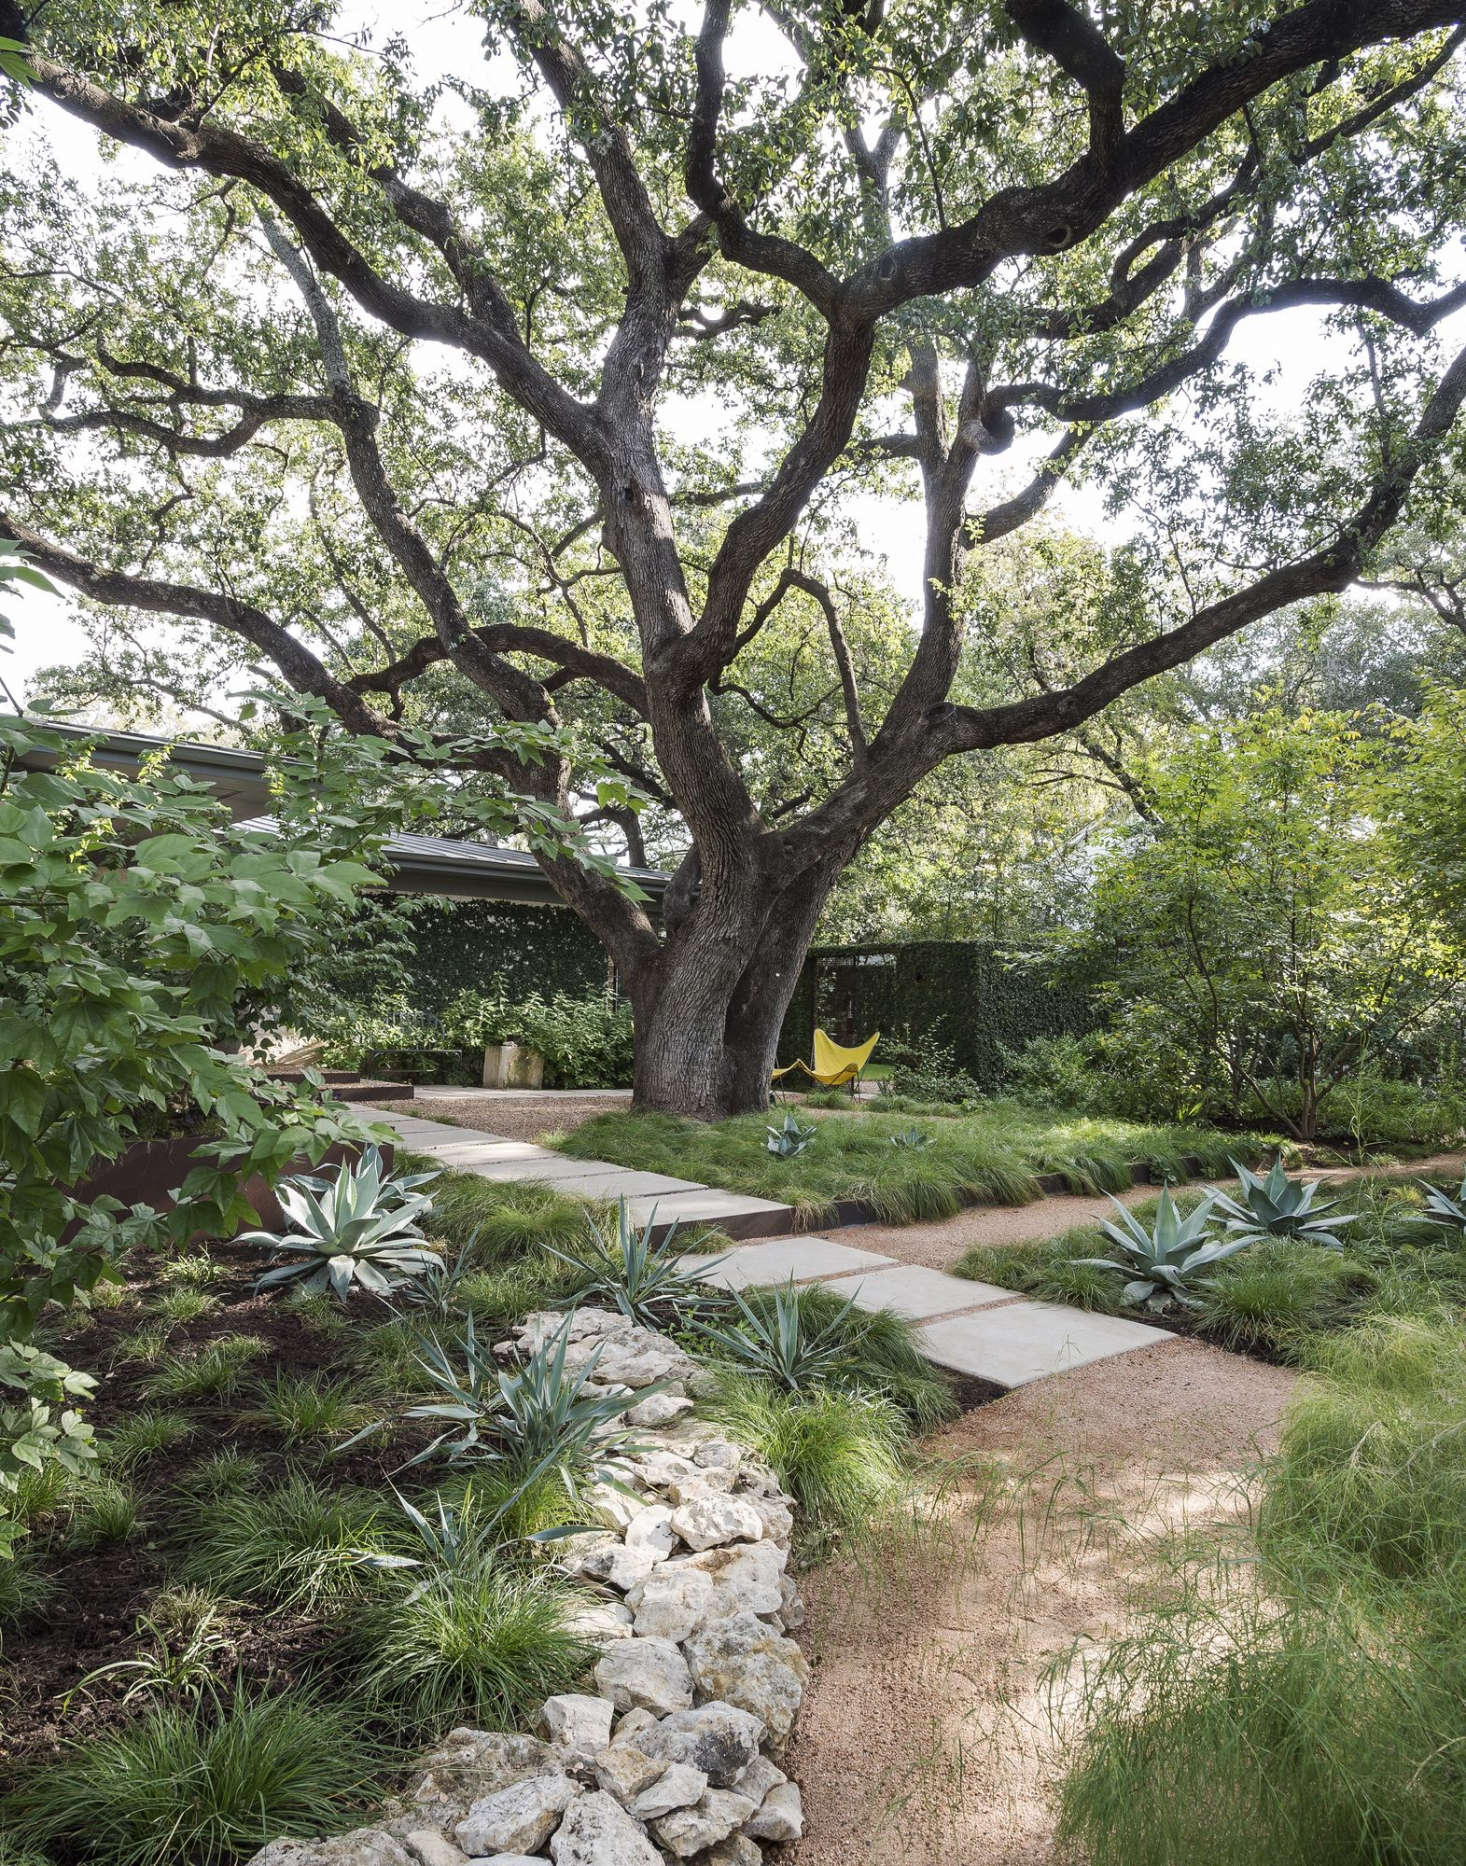 A majestic live oakis a focal point inlandscape architect Christine Ten Eyck's garden in Austin, Texas. (See her garden in our book,Gardenista: The Definitive Guide to Stylish Outdoor Spaces.) Photograph by Matthew Williams for Gardenista. For more on specimen trees, seeSpecimen Trees: Are They Worth It?